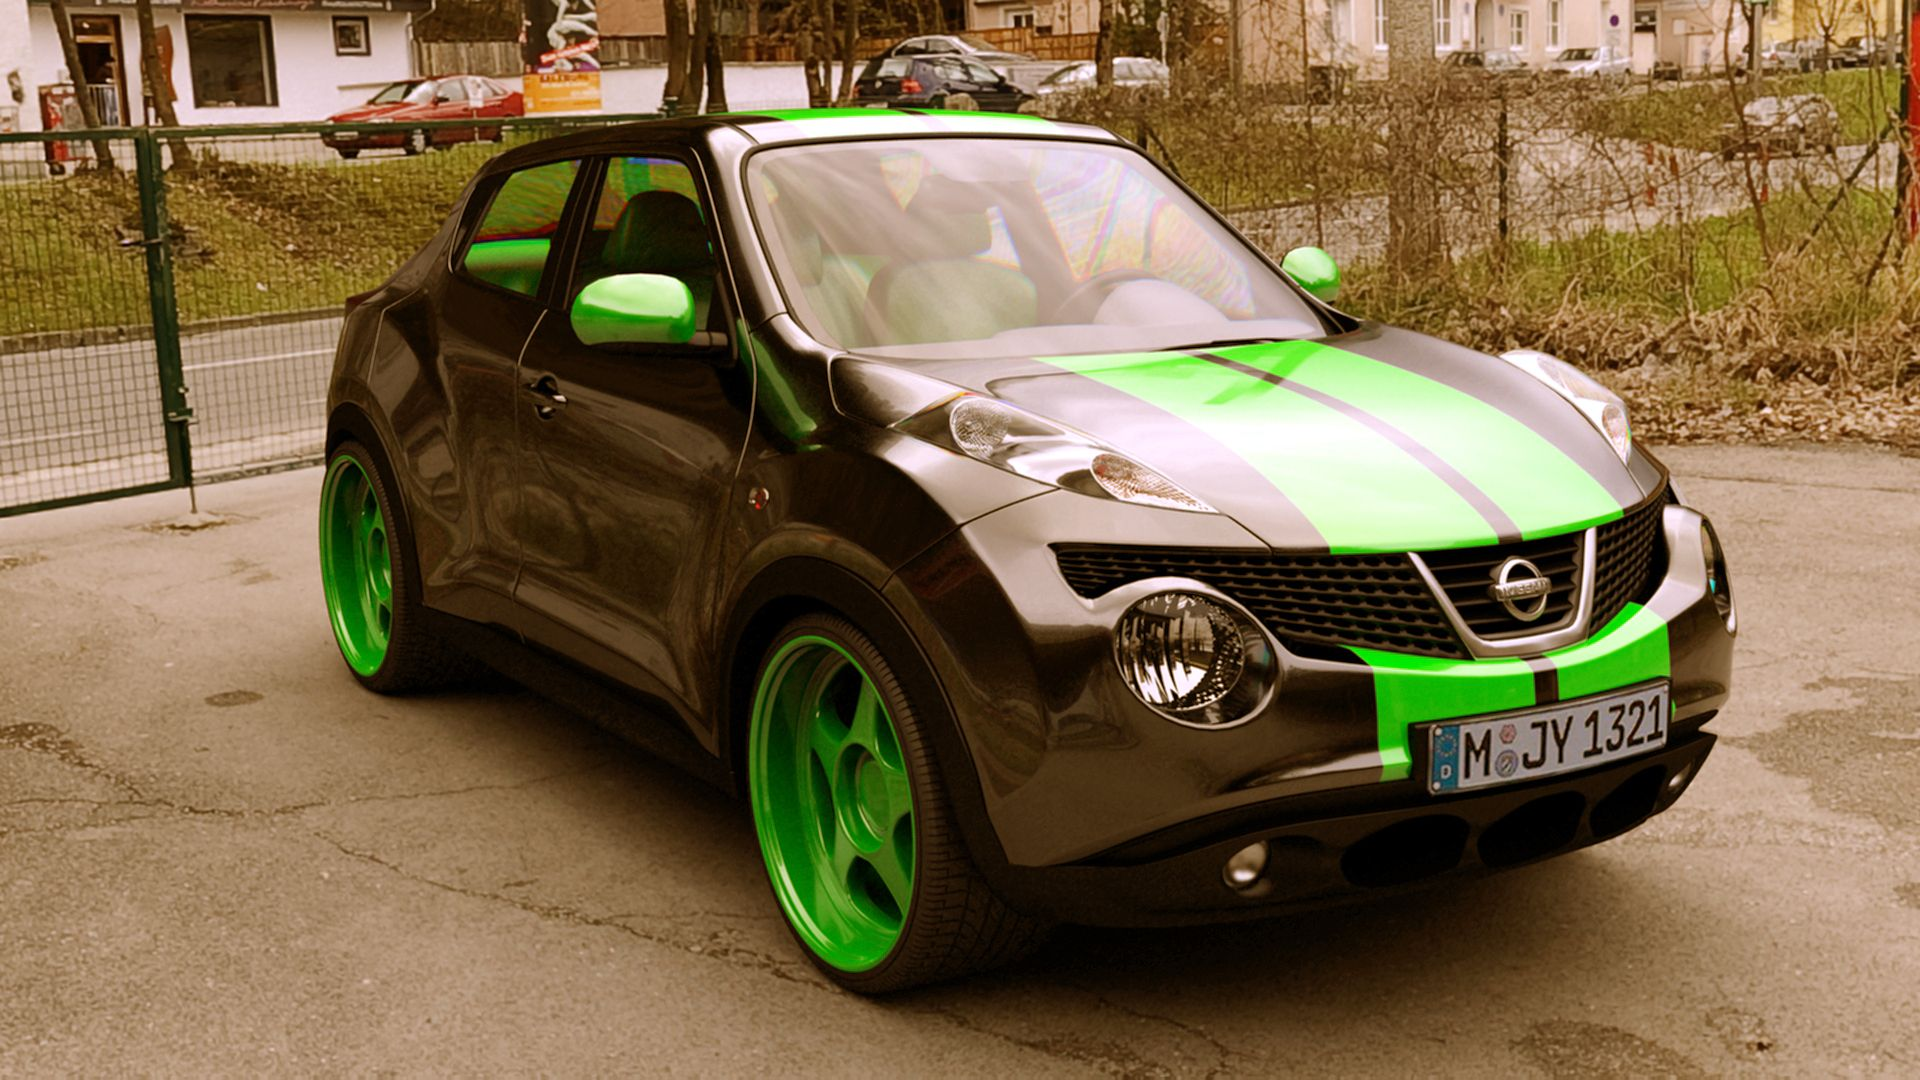 4583d585000a4d2494cd9e8ca931ced2 Take A Look About Nissan Juke Custom with Fabulous Photos Cars Review